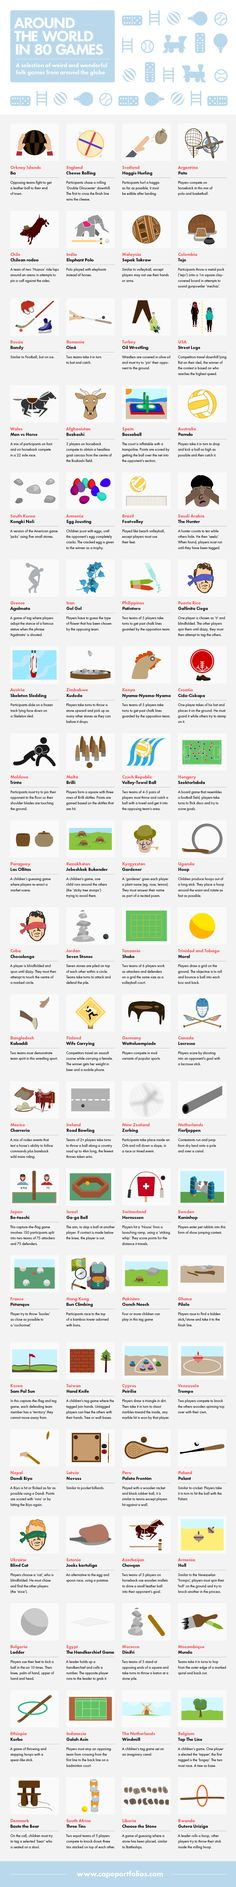 Around The World In 80 Games #infographic #Games #Travel